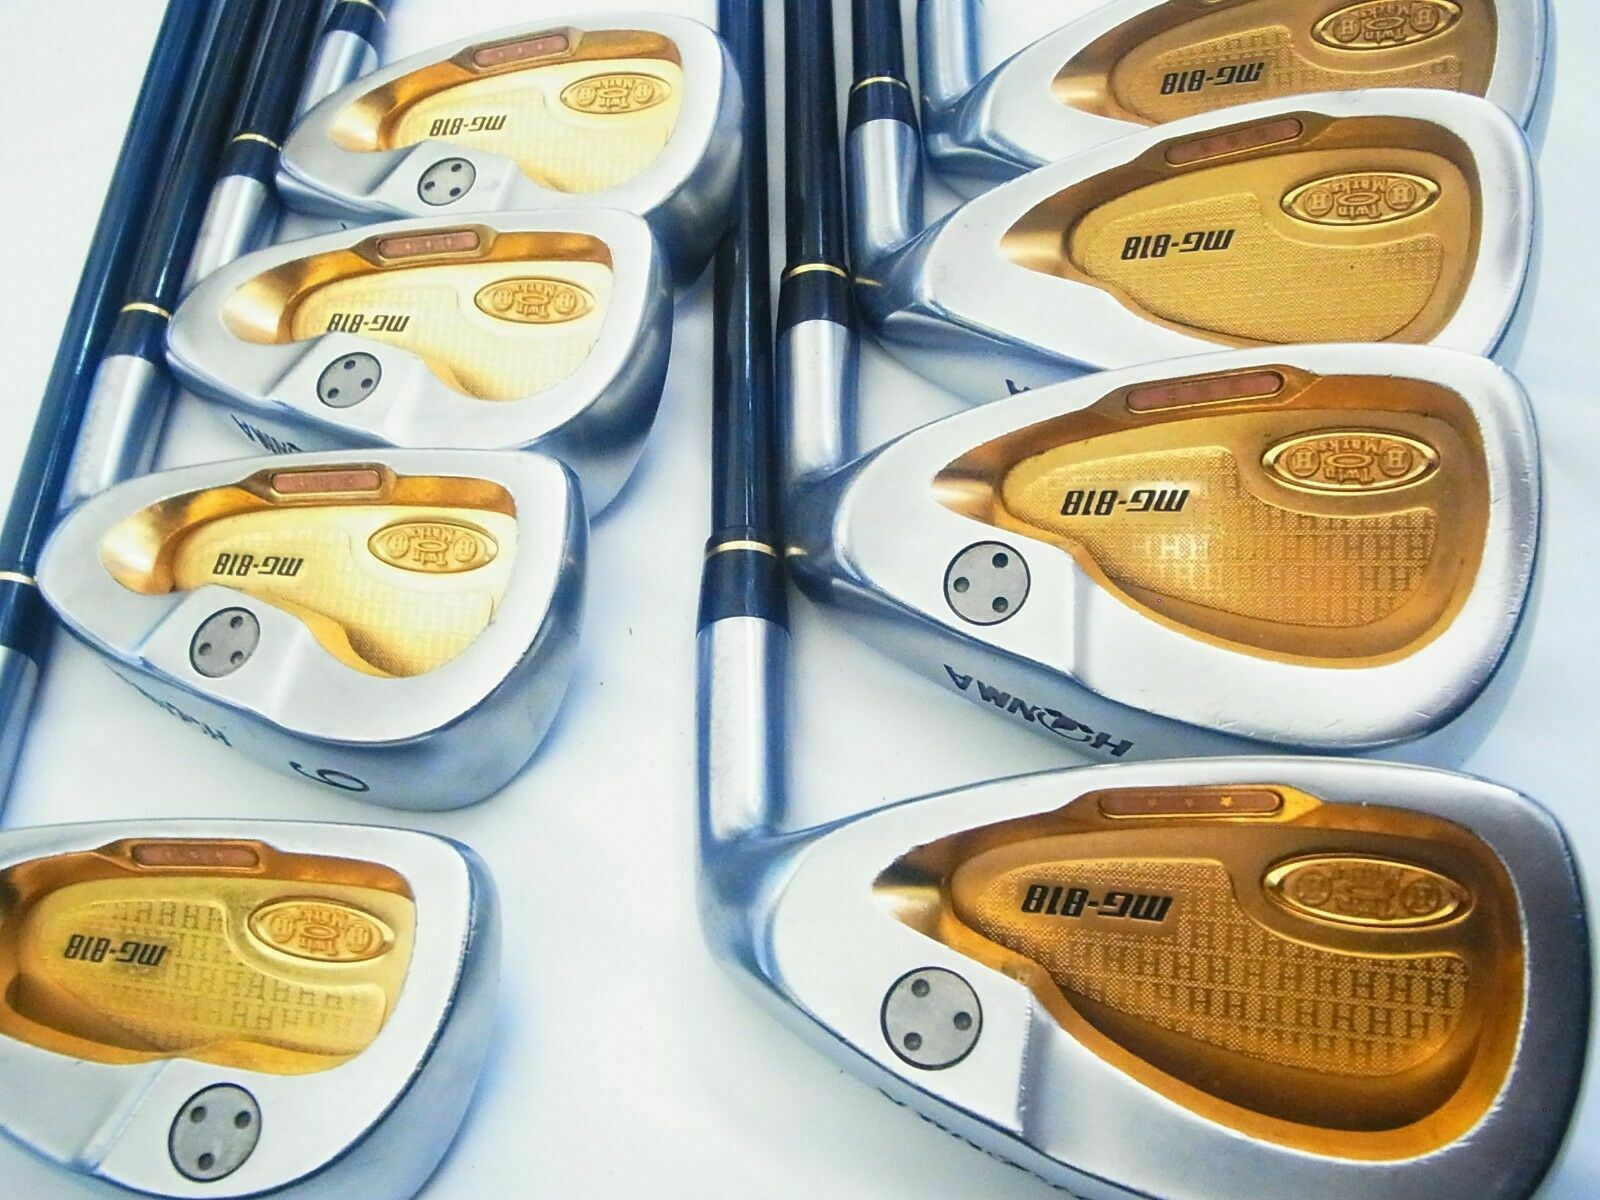 GOLF CLUBS IRONS SET 3-STAR HONMA TWIN MARKS MG-818 8PC R-FLEX BERES